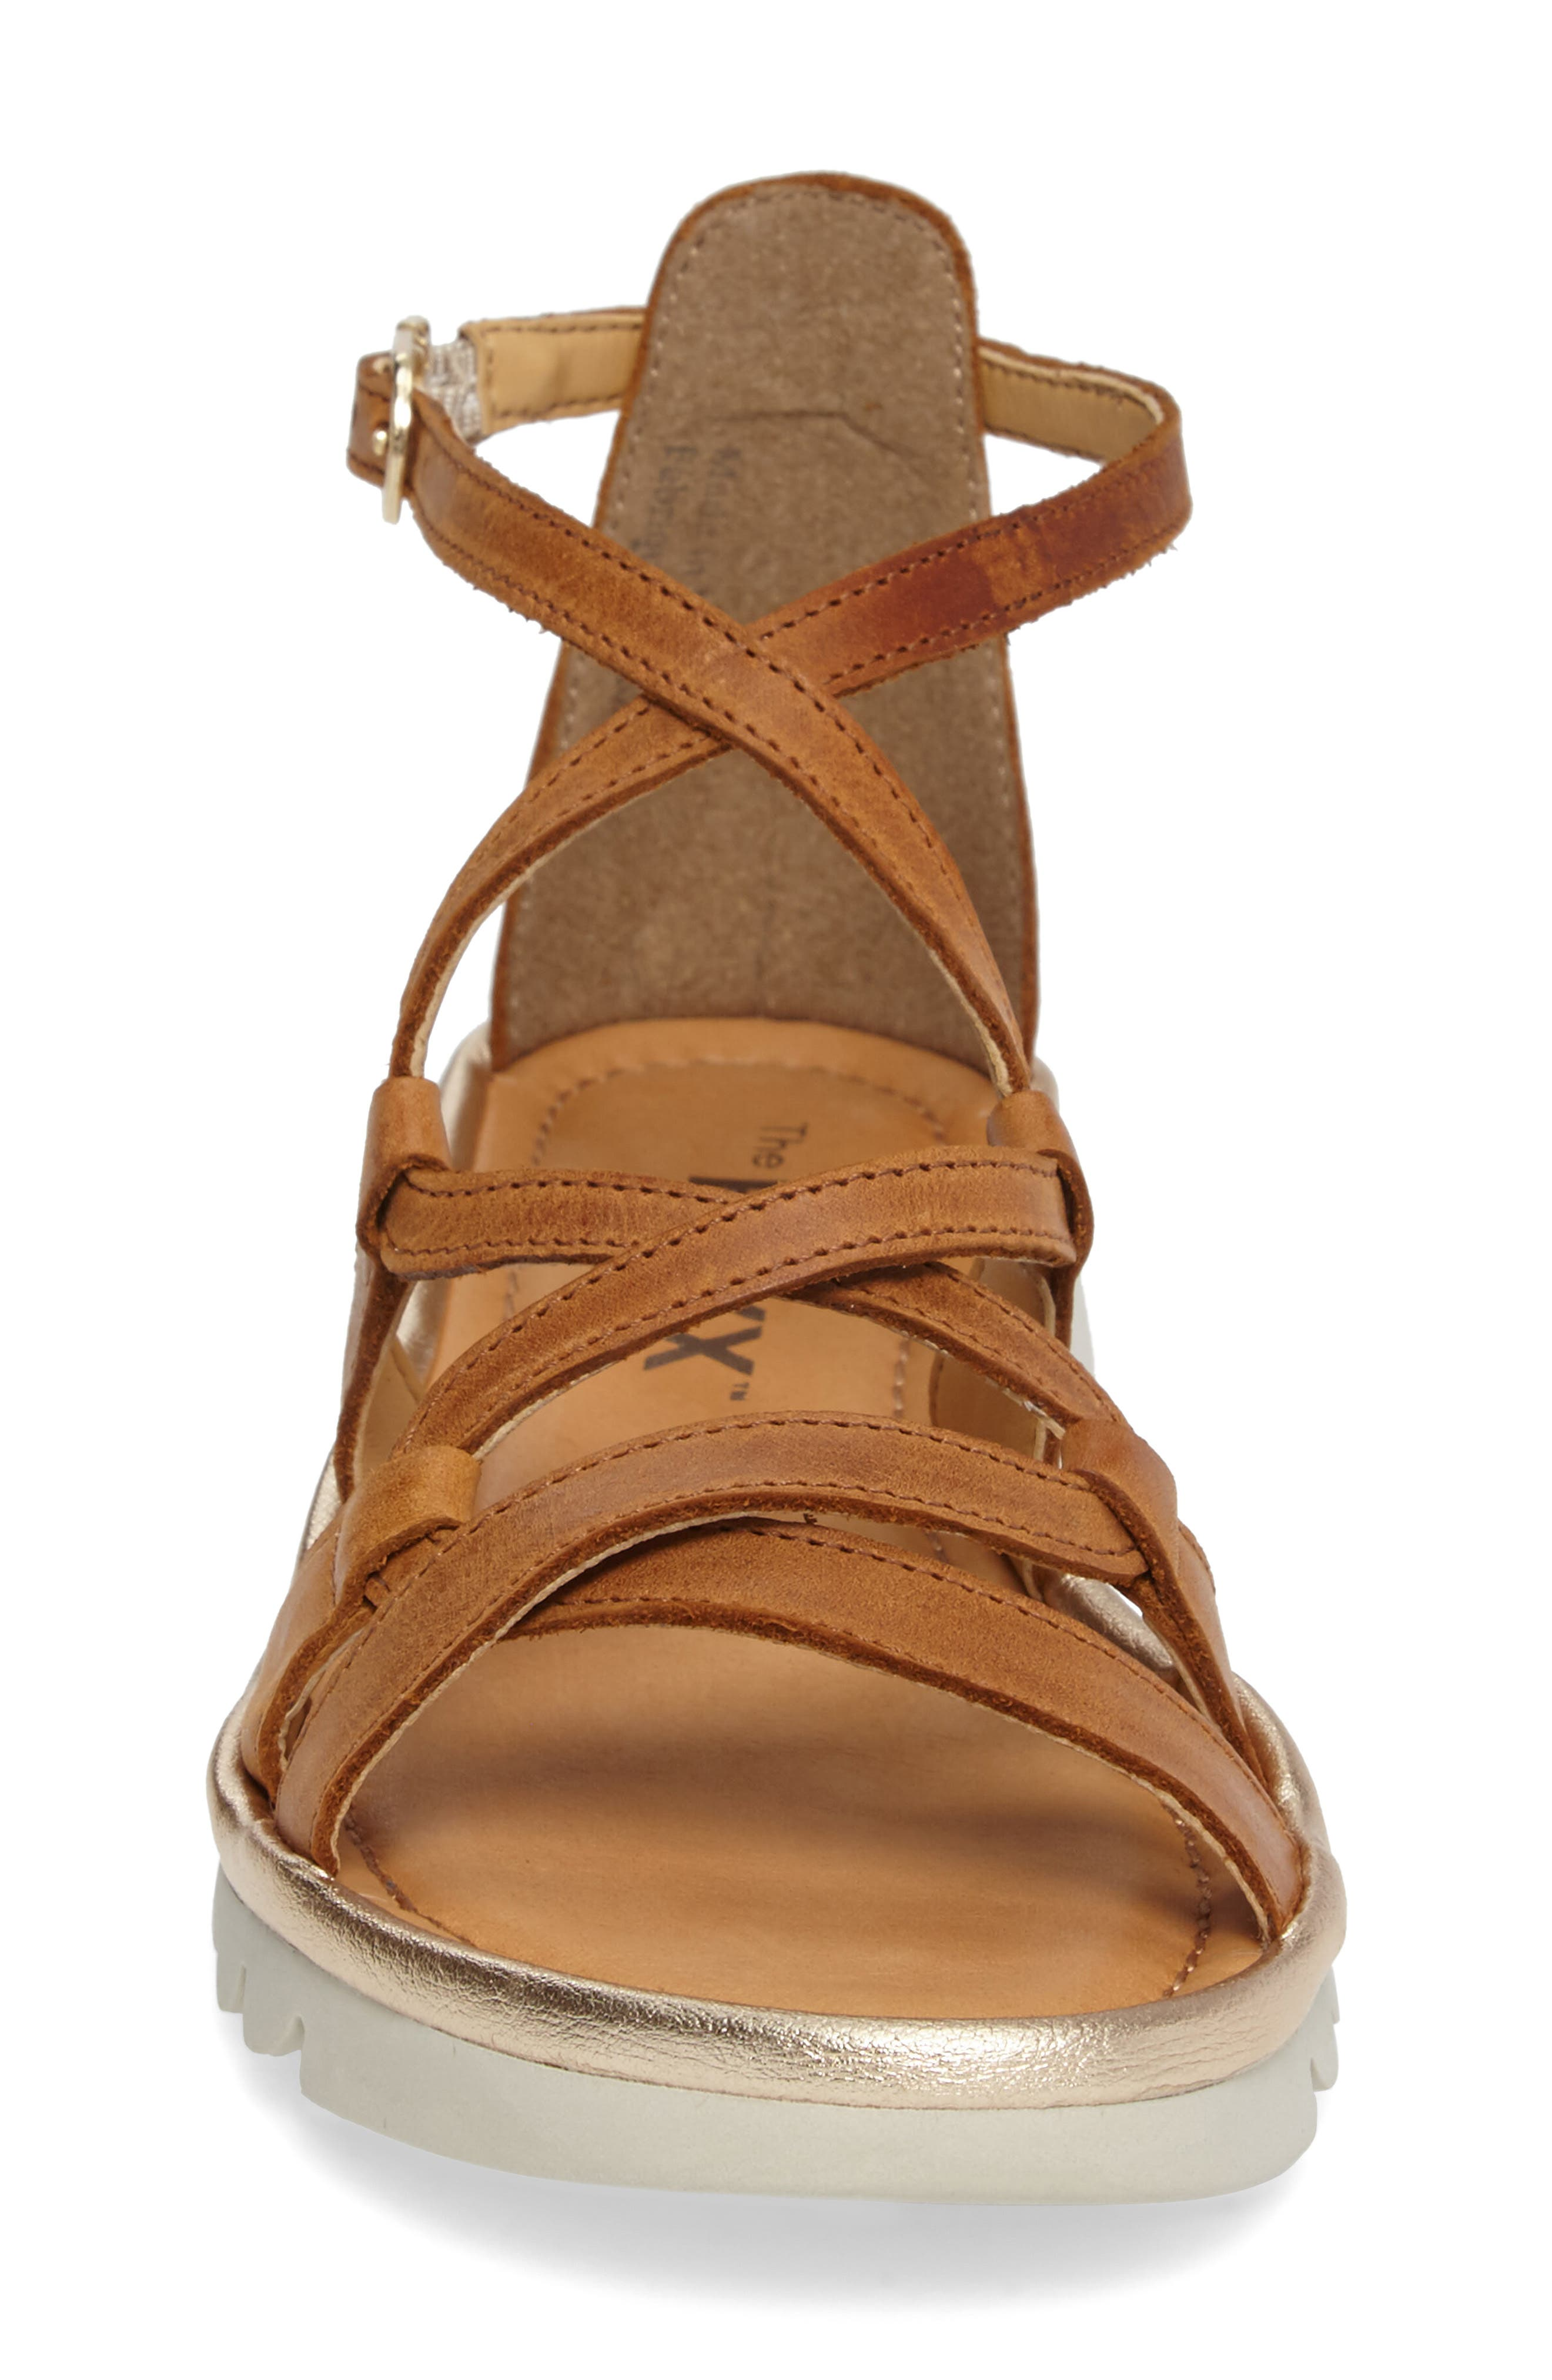 Catch a Wave Sandal,                             Alternate thumbnail 5, color,                             Cognac Leather